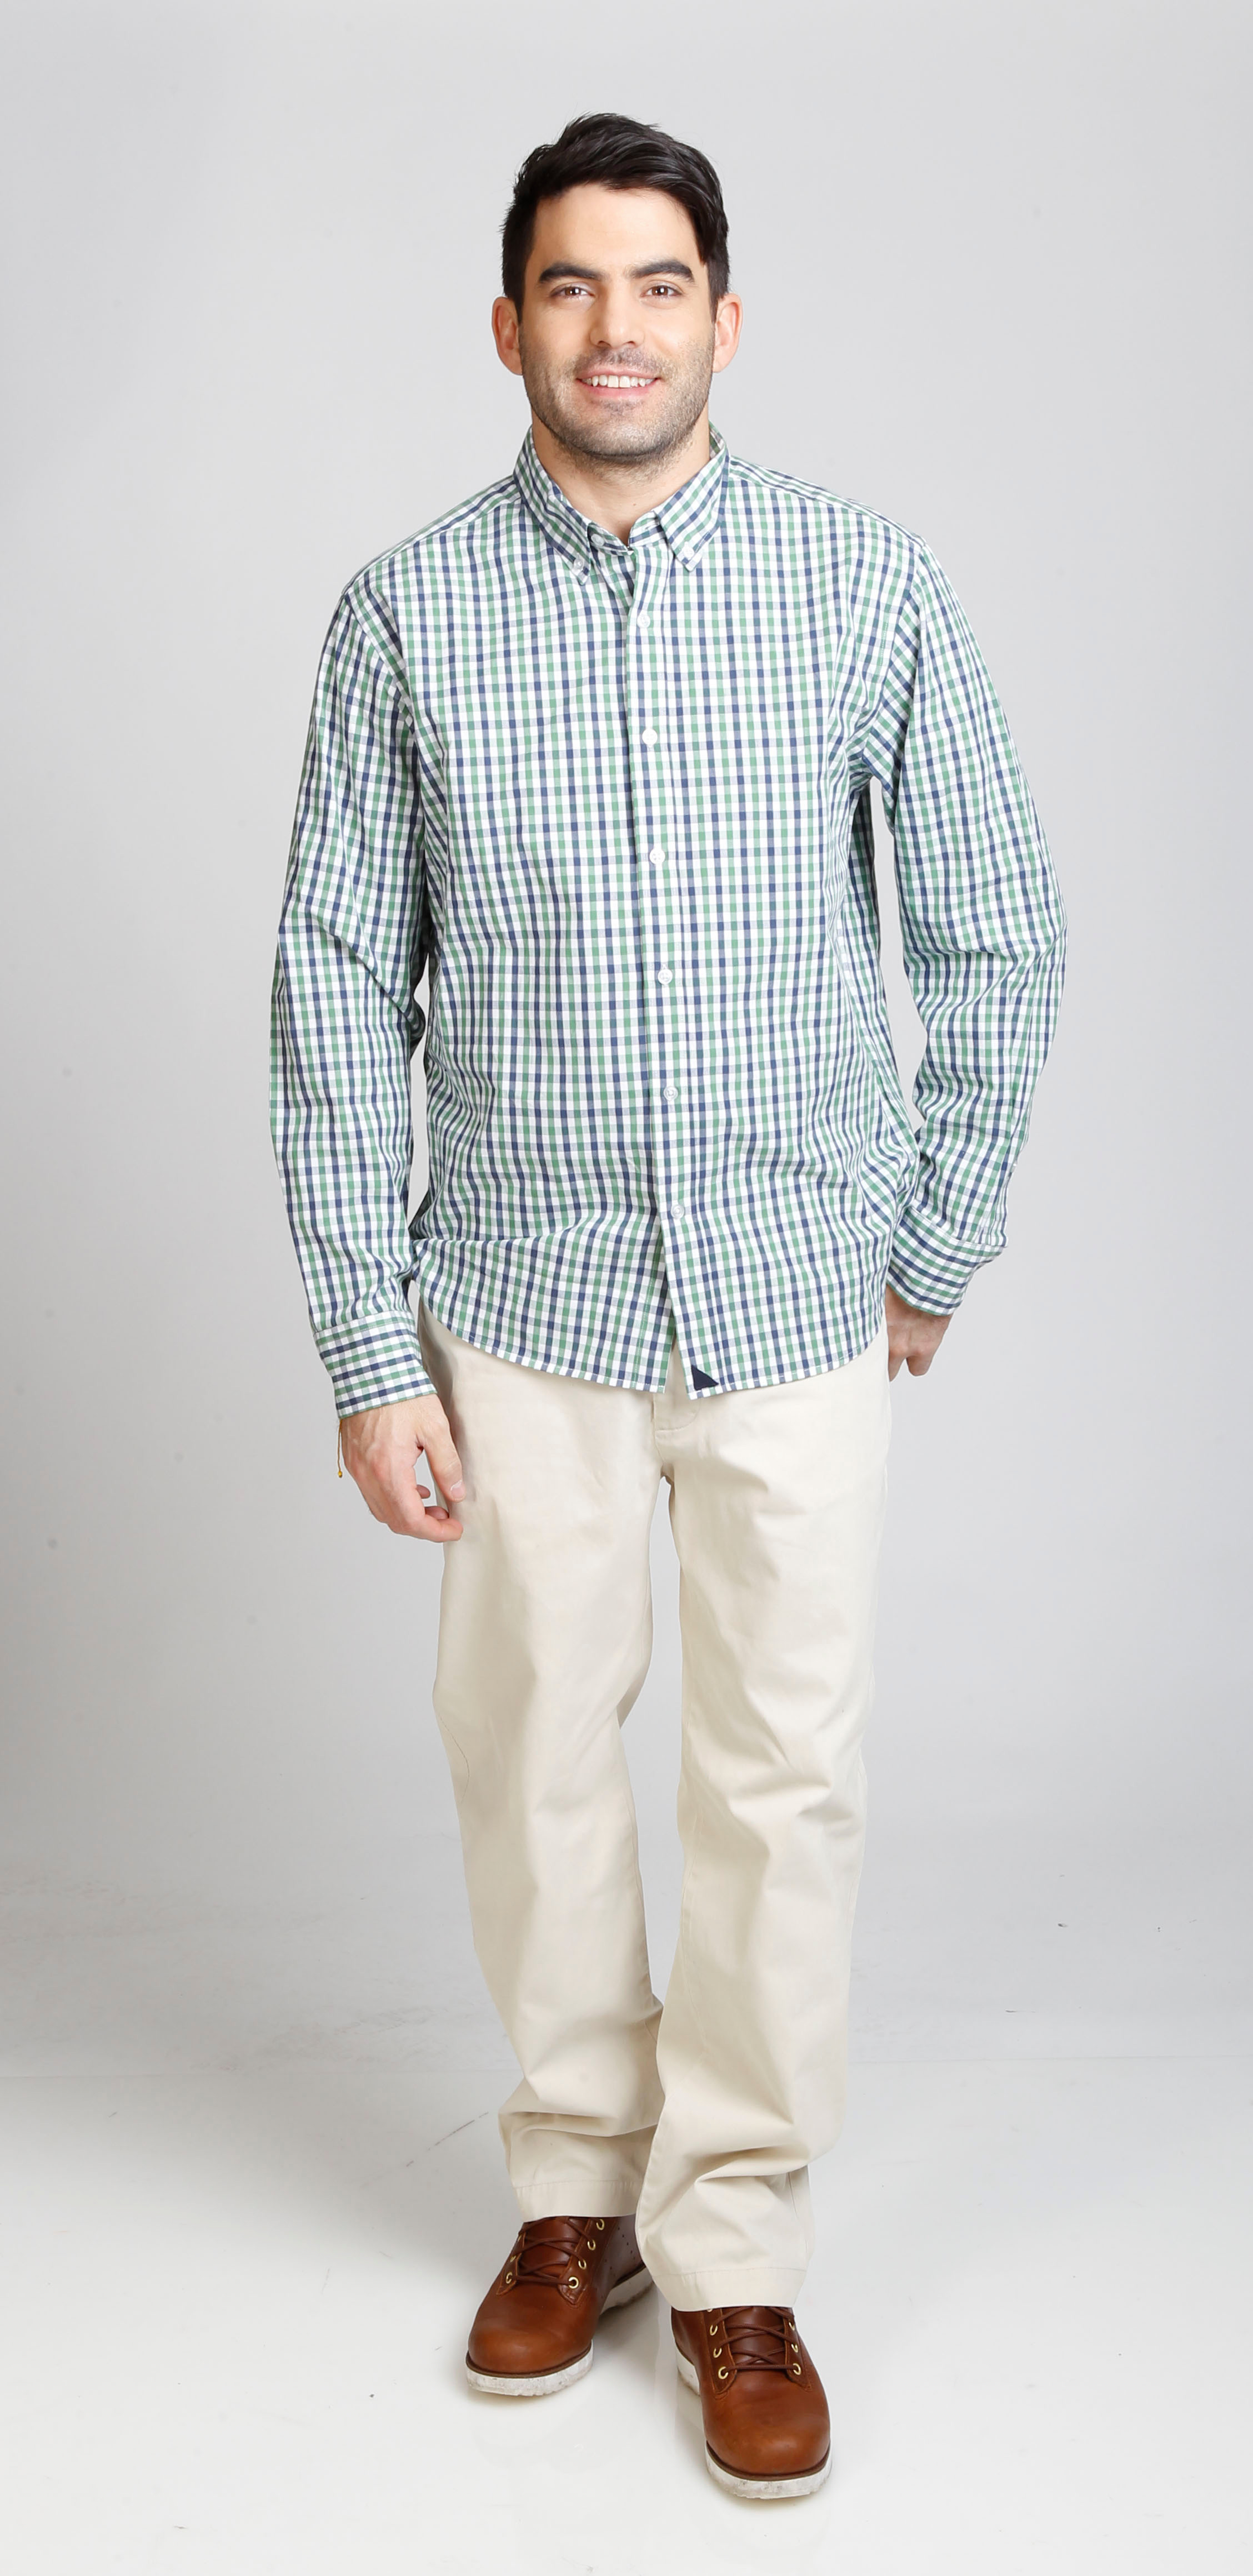 quality office shirt untucked photo - 1